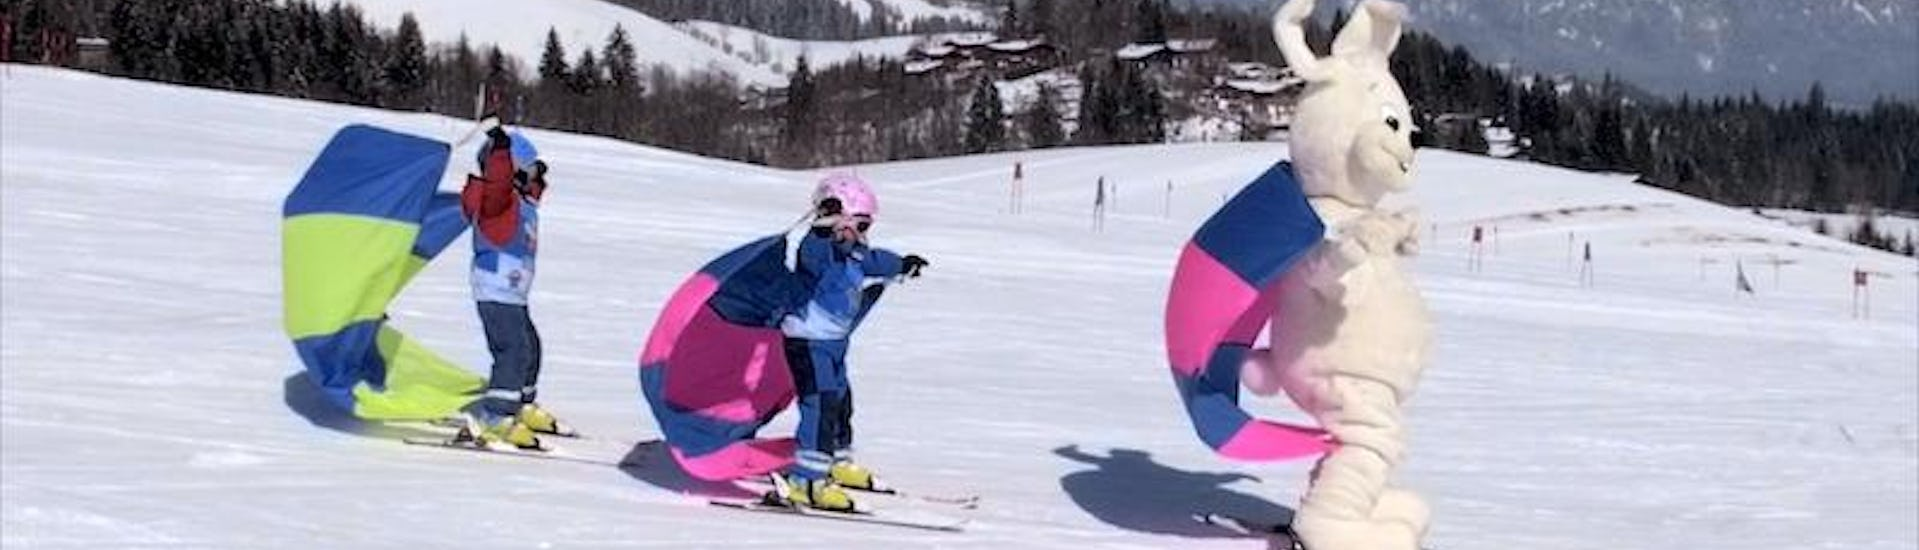 Ski Lessons for Kids (4-16 years) - All Levels